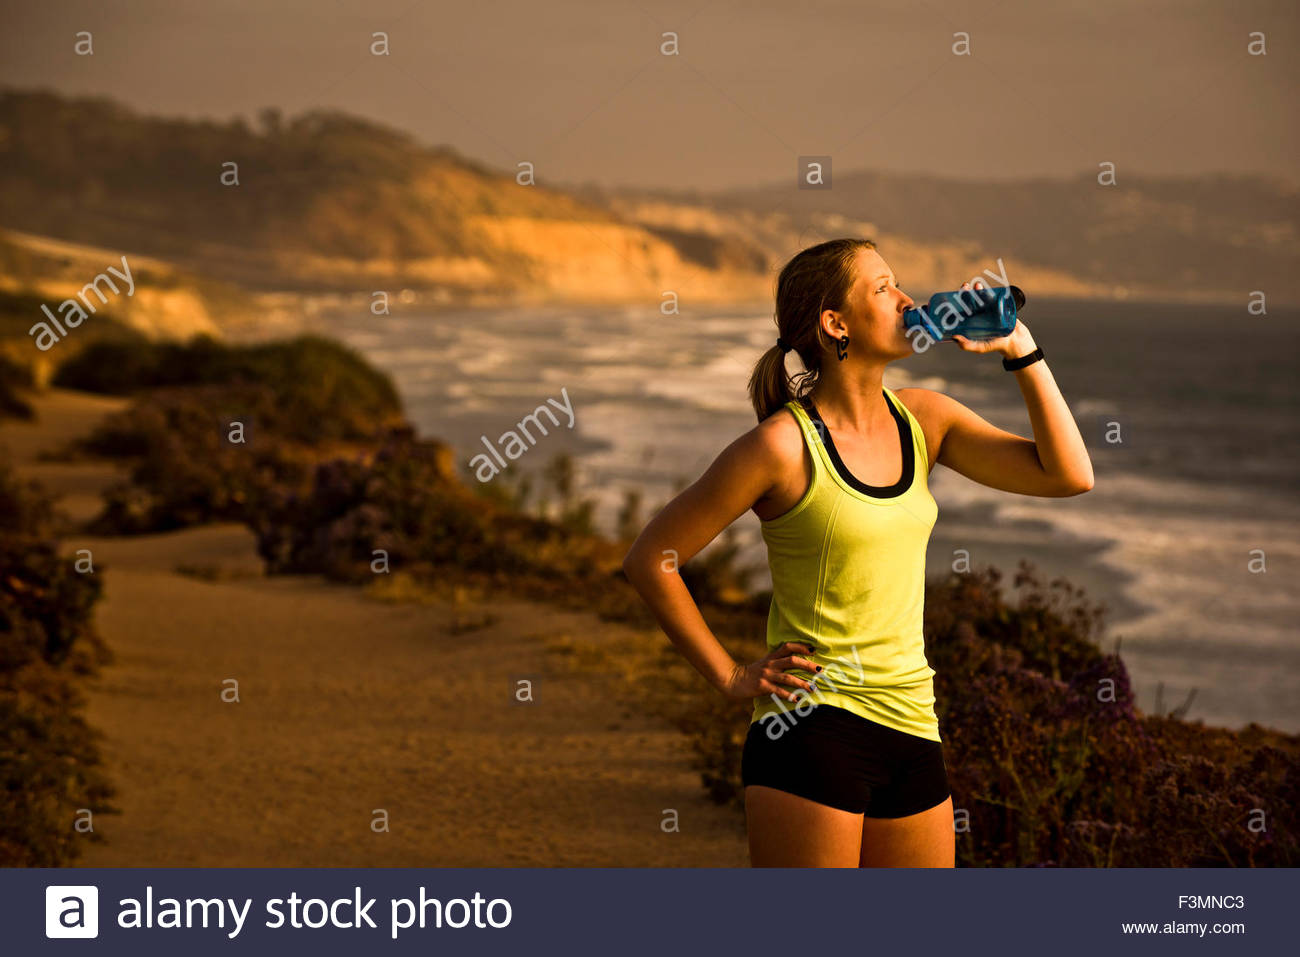 A female runner drinks from a water bottle. - Stock Image